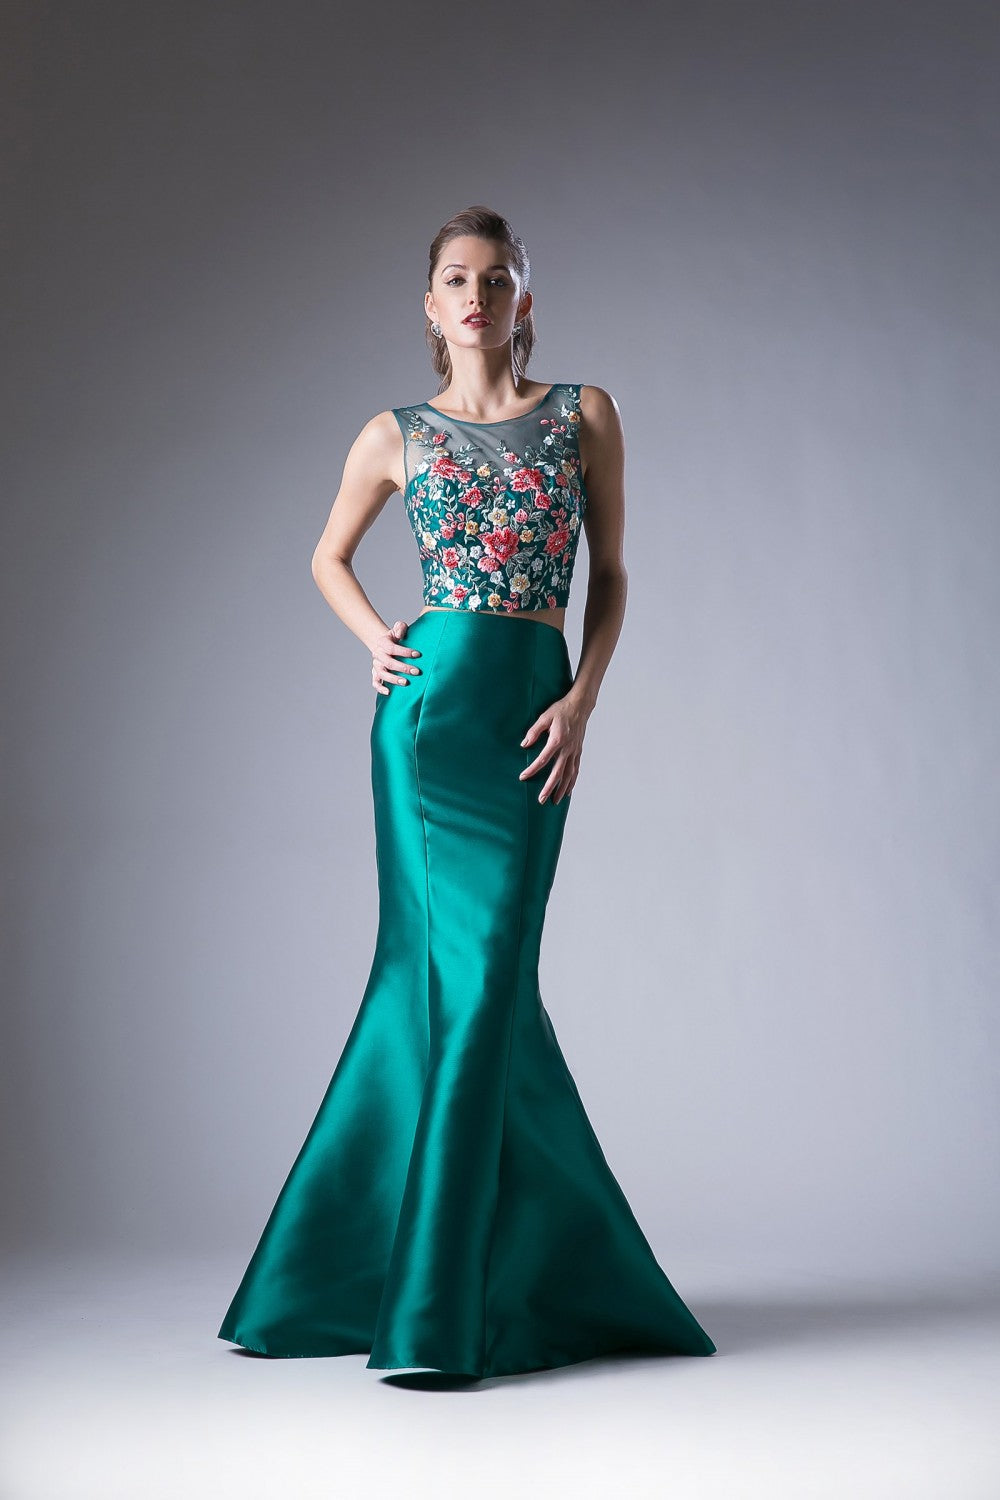 Flower Applique 2 Piece Mermaid Gown